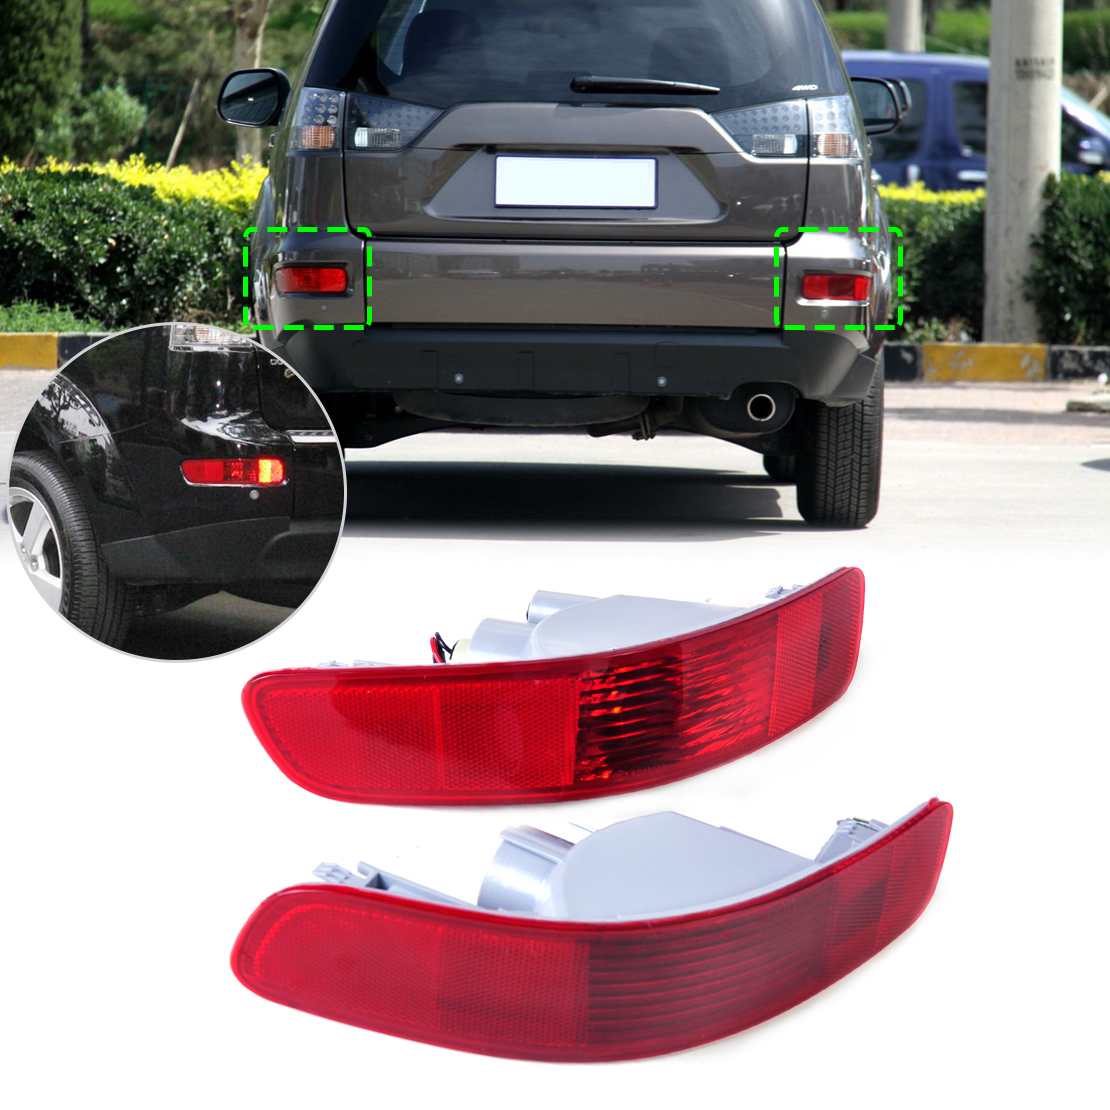 DWCX 8352A005 8355A004 8337A015 2pcs Rear Tail Fog Light Lamp Reflector for Mitsubishi Outlander 2007 2008 2009 2010 2011 2012 aluminium alloy fabric rear trunk security shield cargo cover for mitsubishi outlander 2007 2008 2009 2010 2011 2012